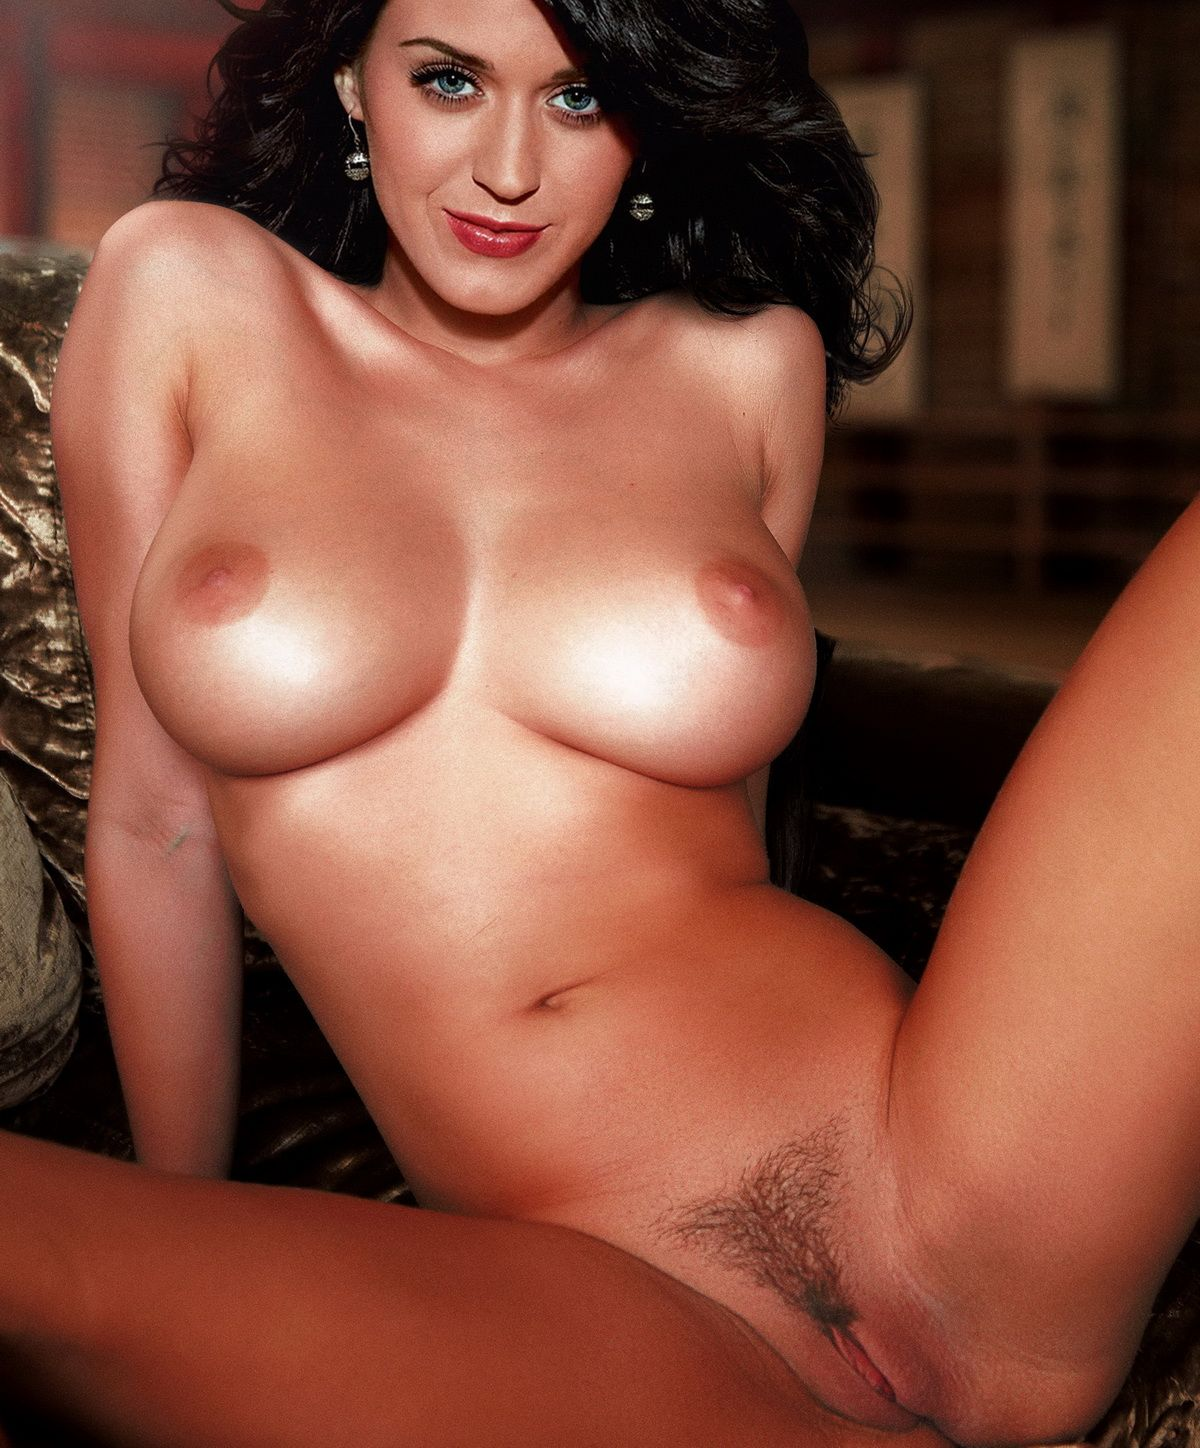 Nude kathy perry Katy Perry